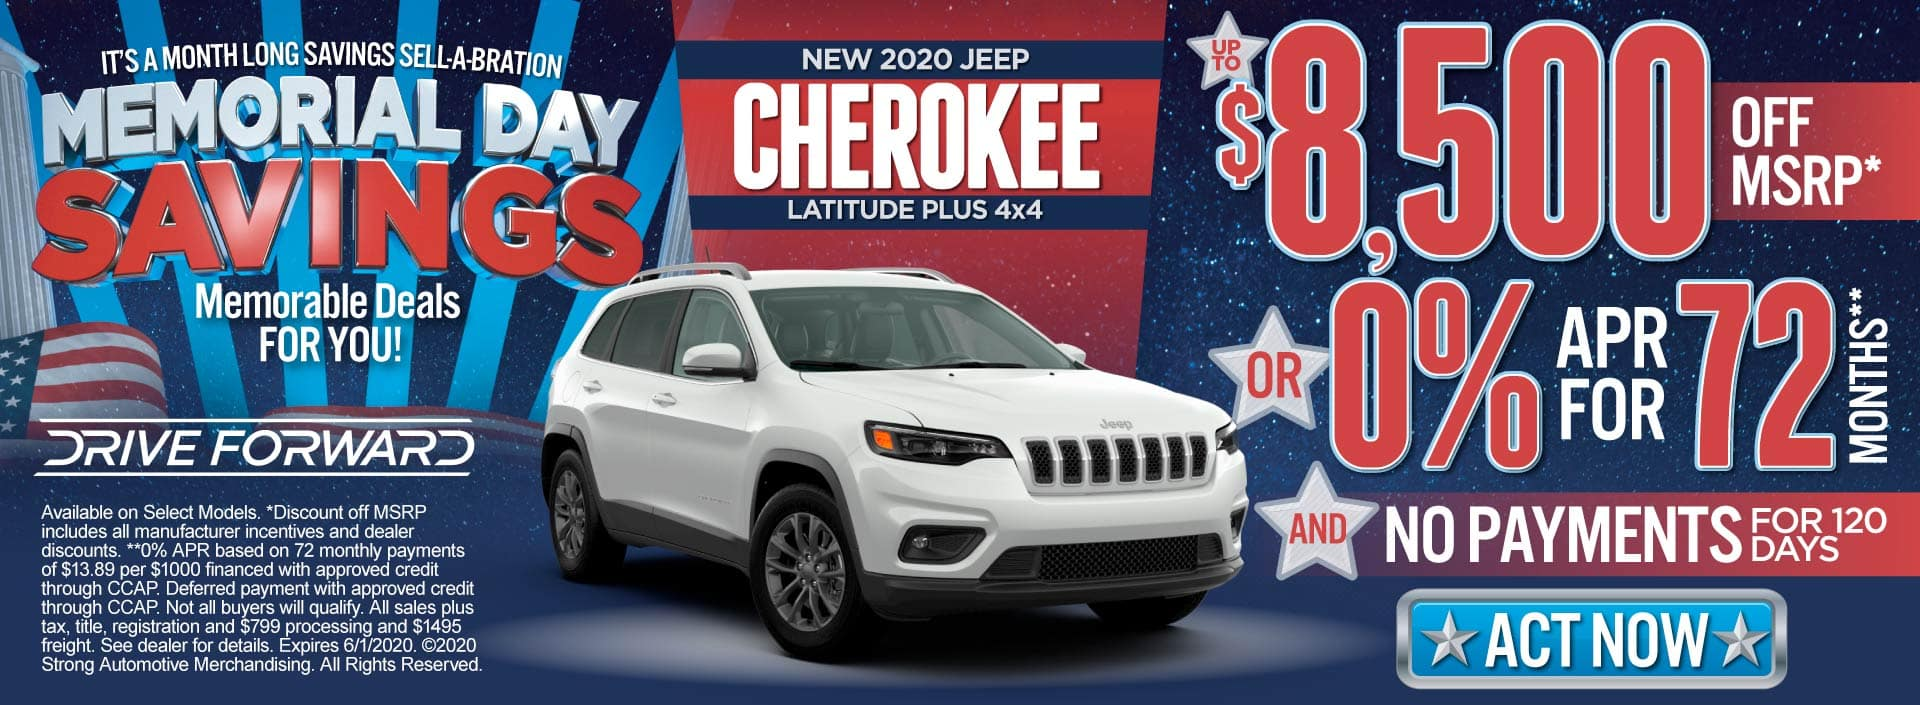 New 2020 Jeep Cherokee - Up to $8,500 off MSRP or 0% for 72 months and No Payments for 120 Days - Click to View Inventory